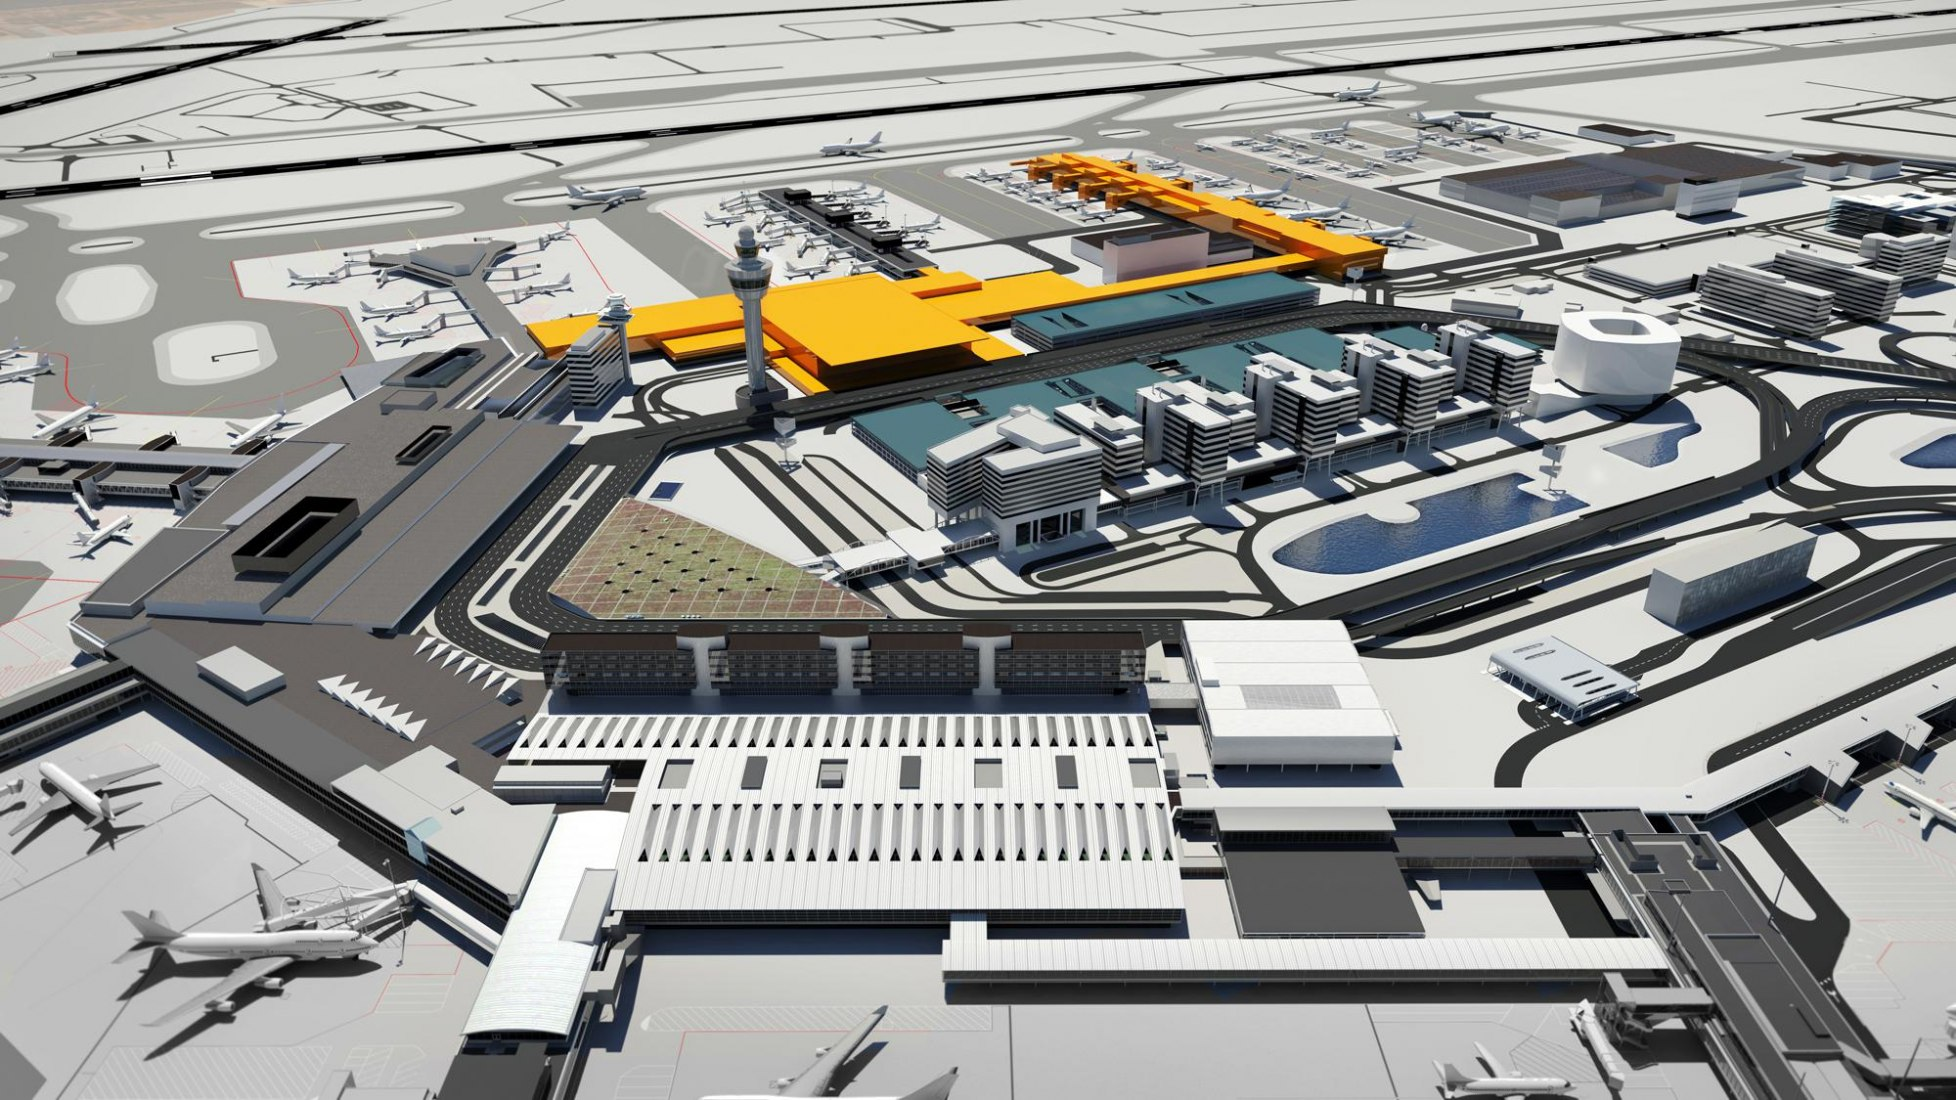 The new pier and terminal (highlighted in yellow) are scheduled to be operational in 2019 and 2023 respectively